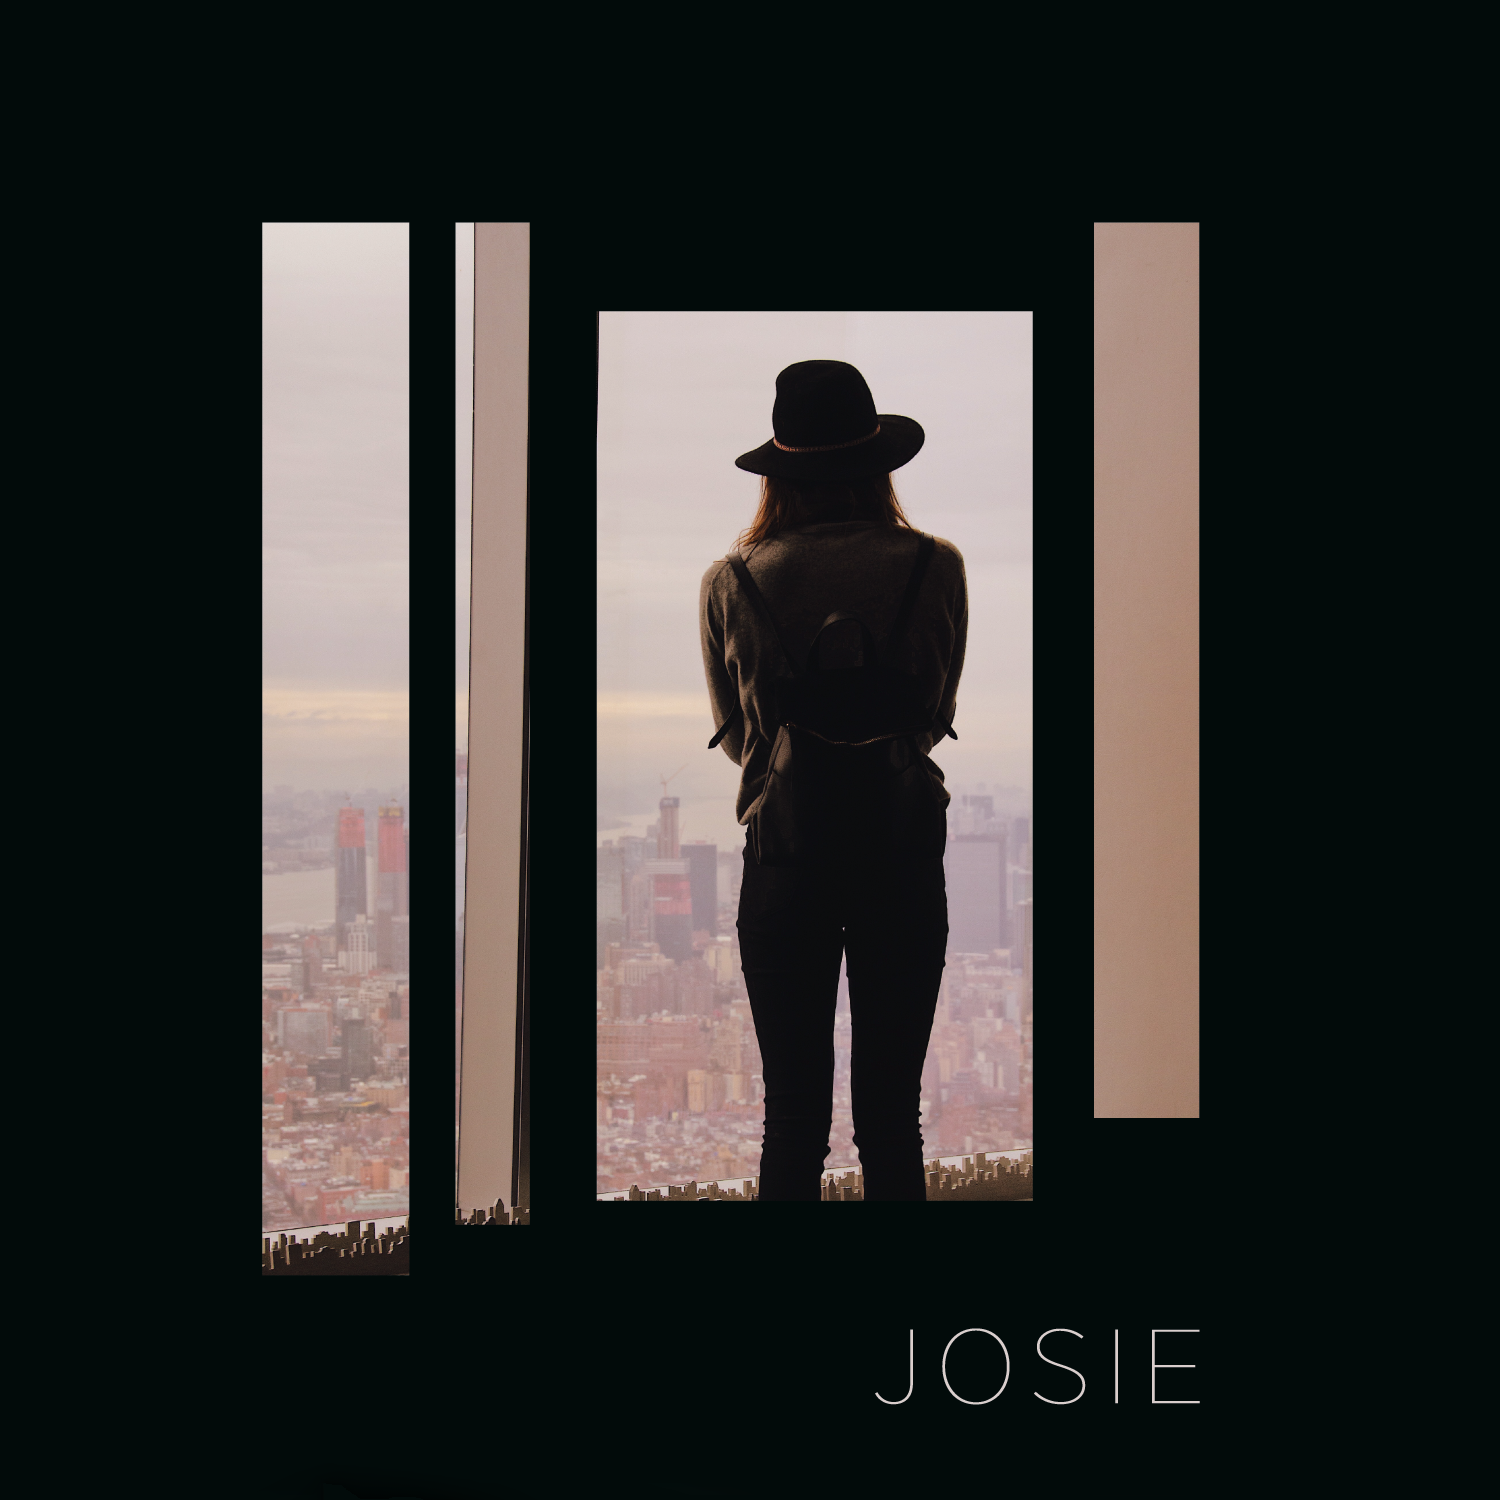 Josie Spotify Artwork